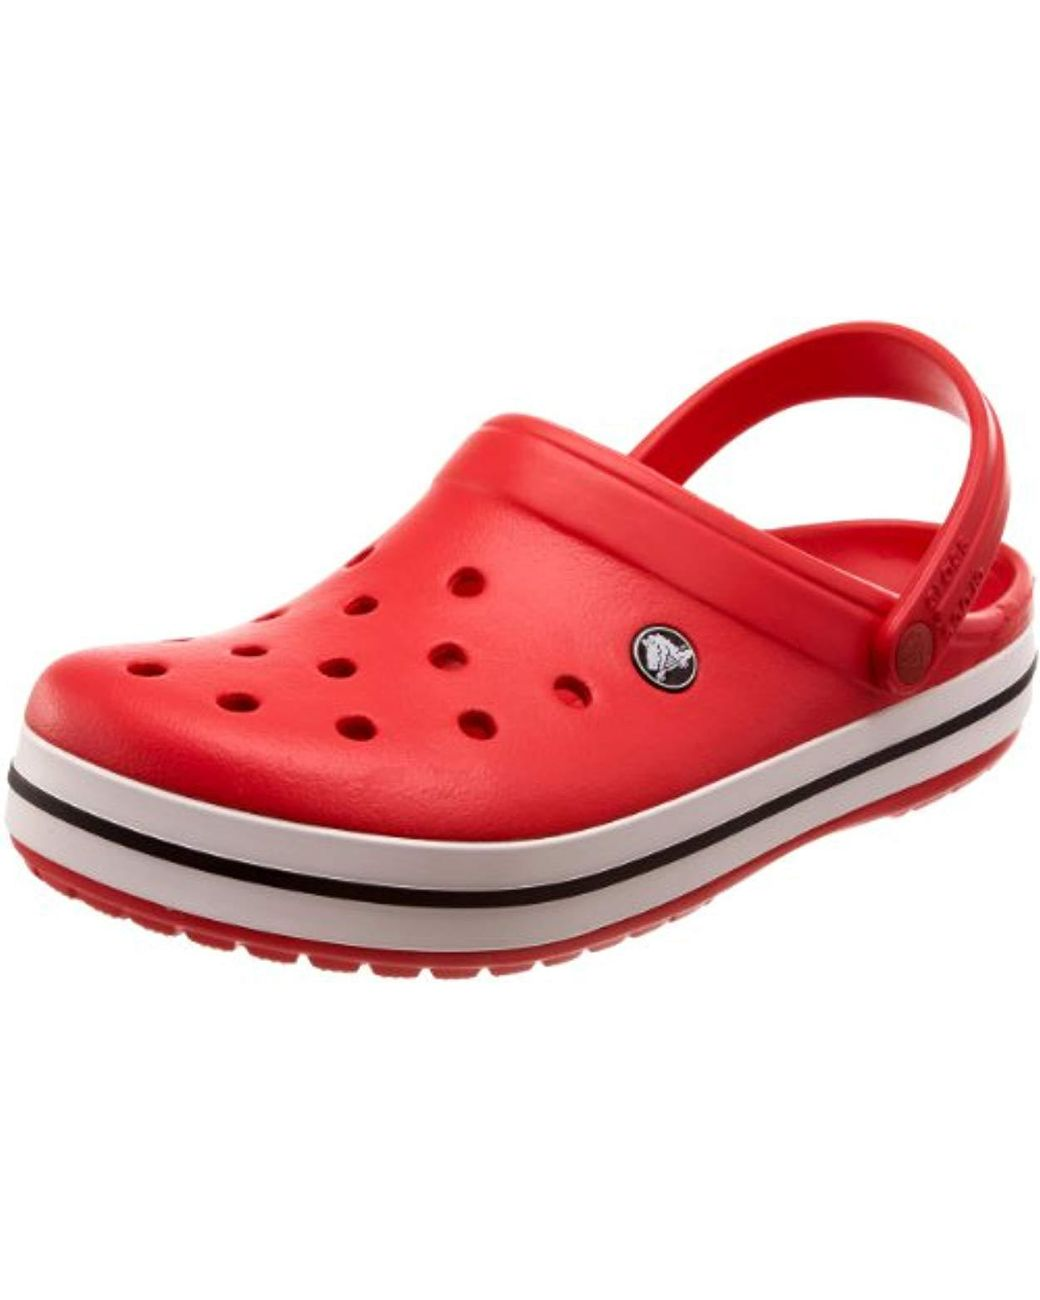 3e1ce1e98 Crocs™ Unisex Adult Crocband Clogs in Red - Save 17% - Lyst